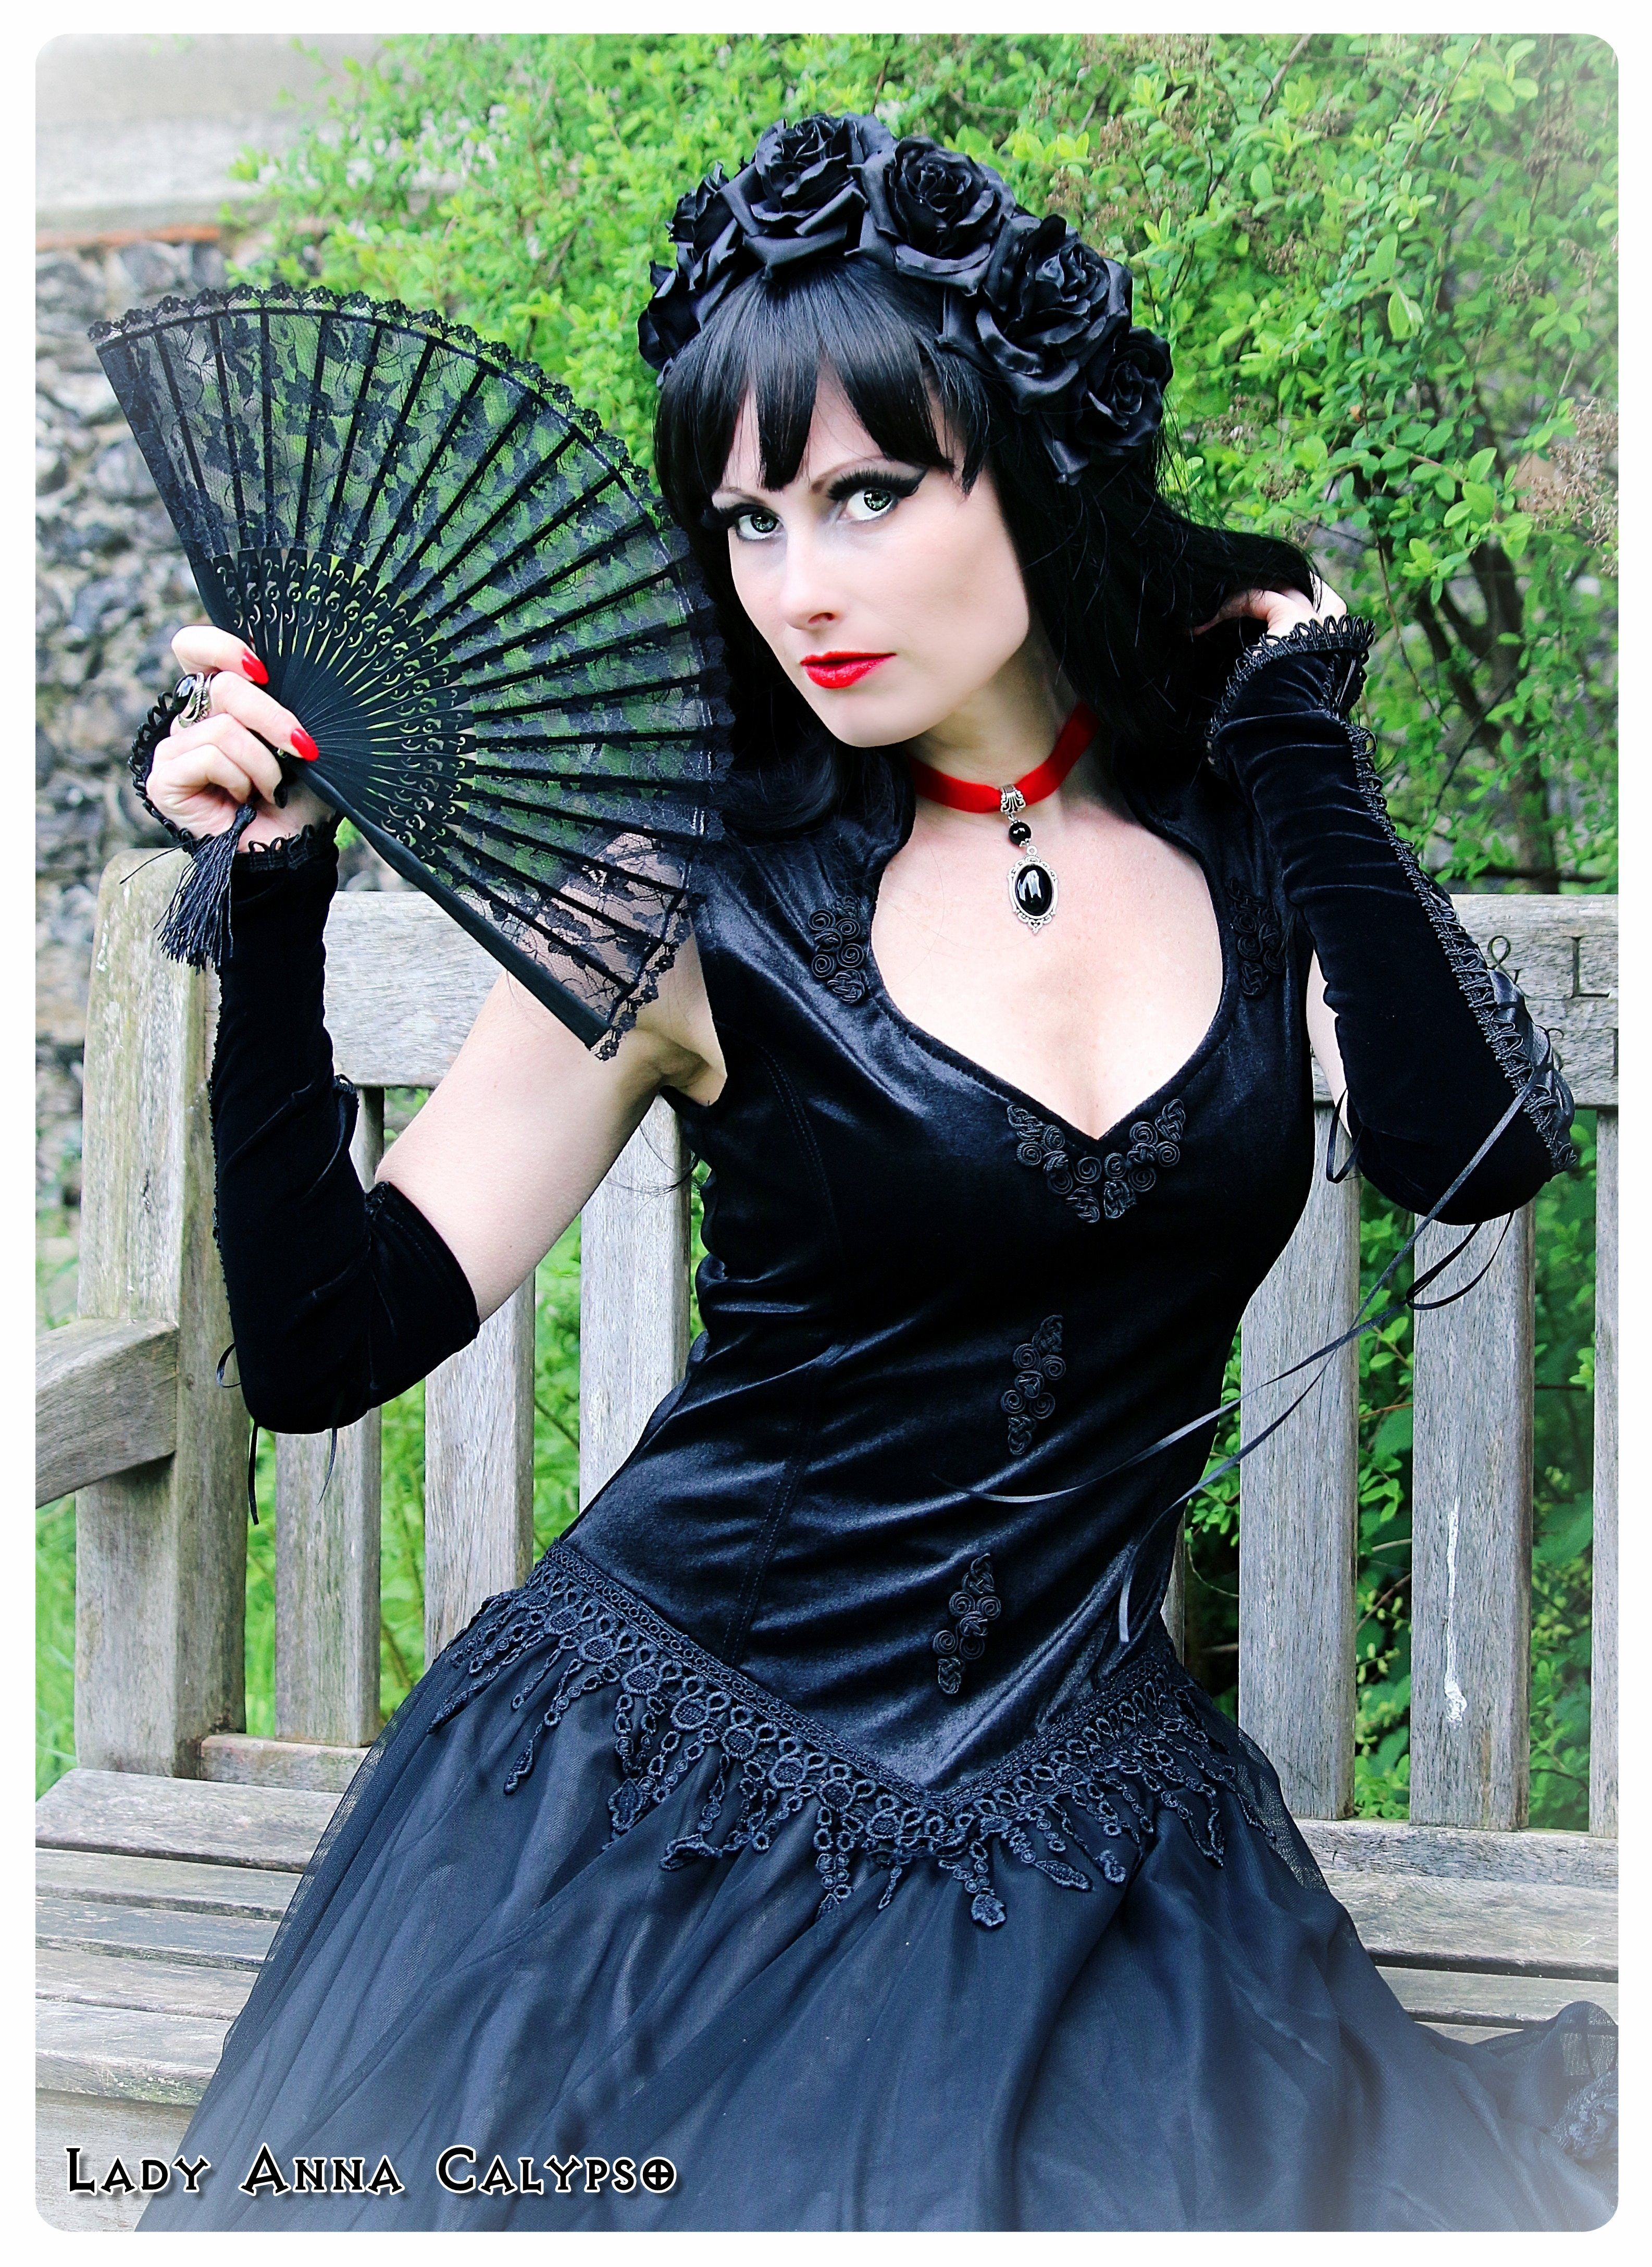 Model; Lady anna Calypso  Photography ; Andy #Gothic #Goth #Gothicdress #Sinister